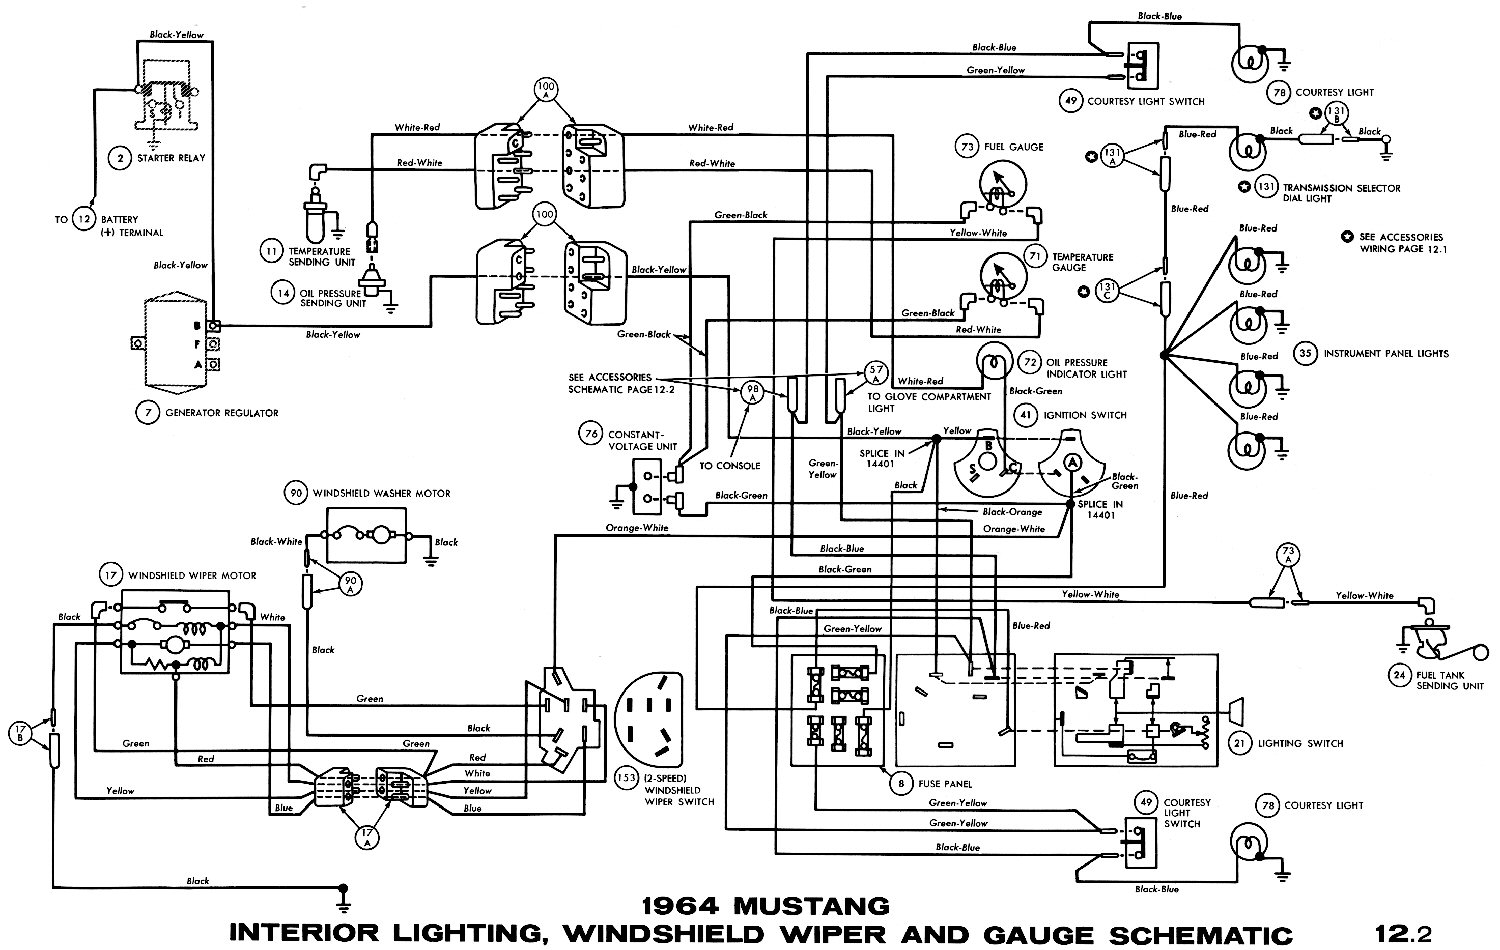 1990 mustang ignition coil wiring diagram